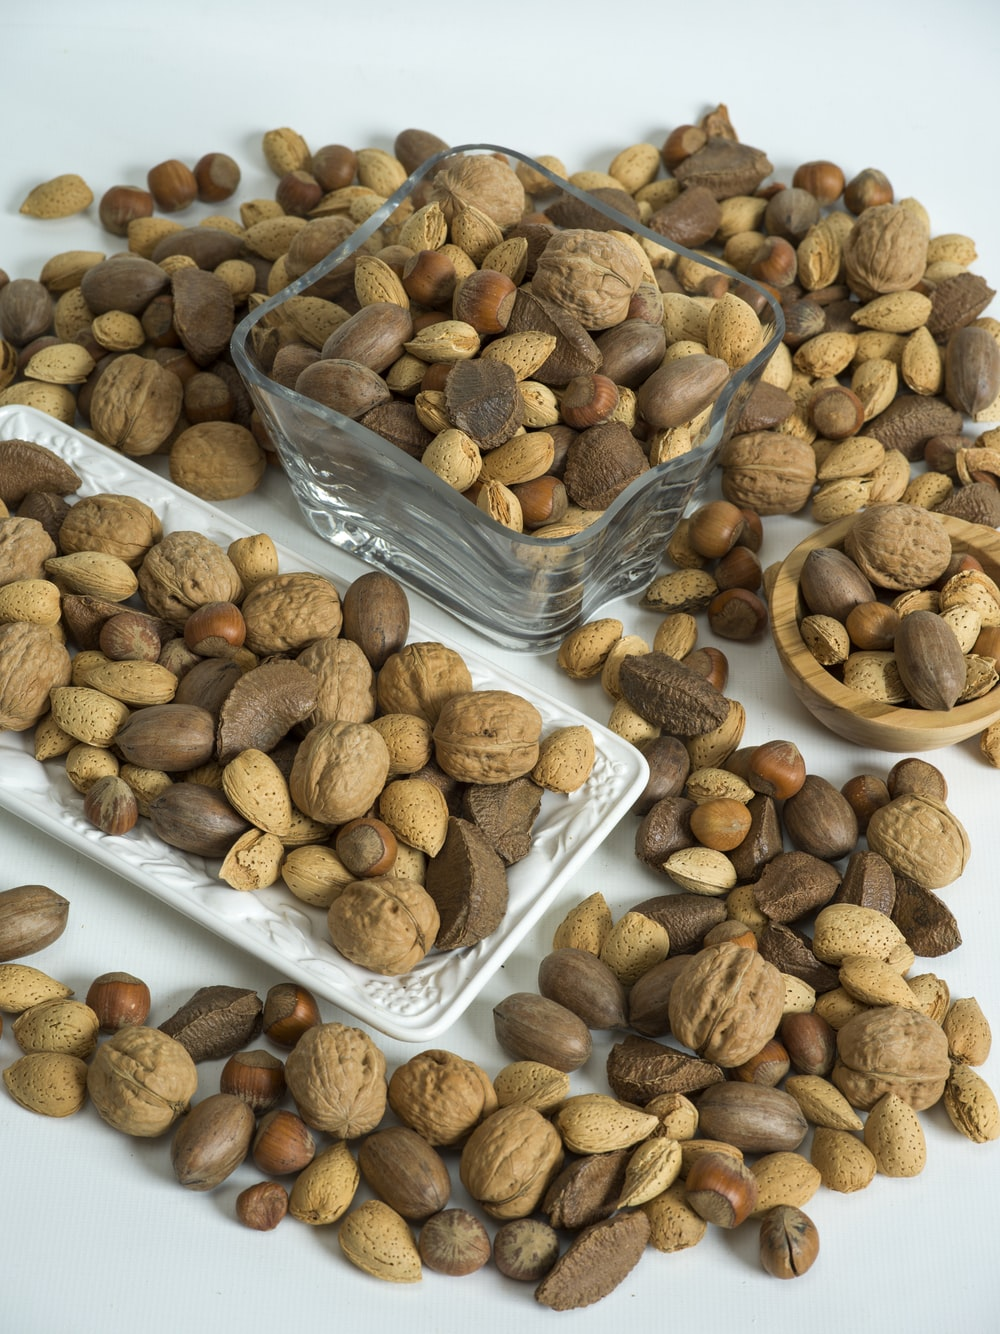 brown almond nuts on white plastic container